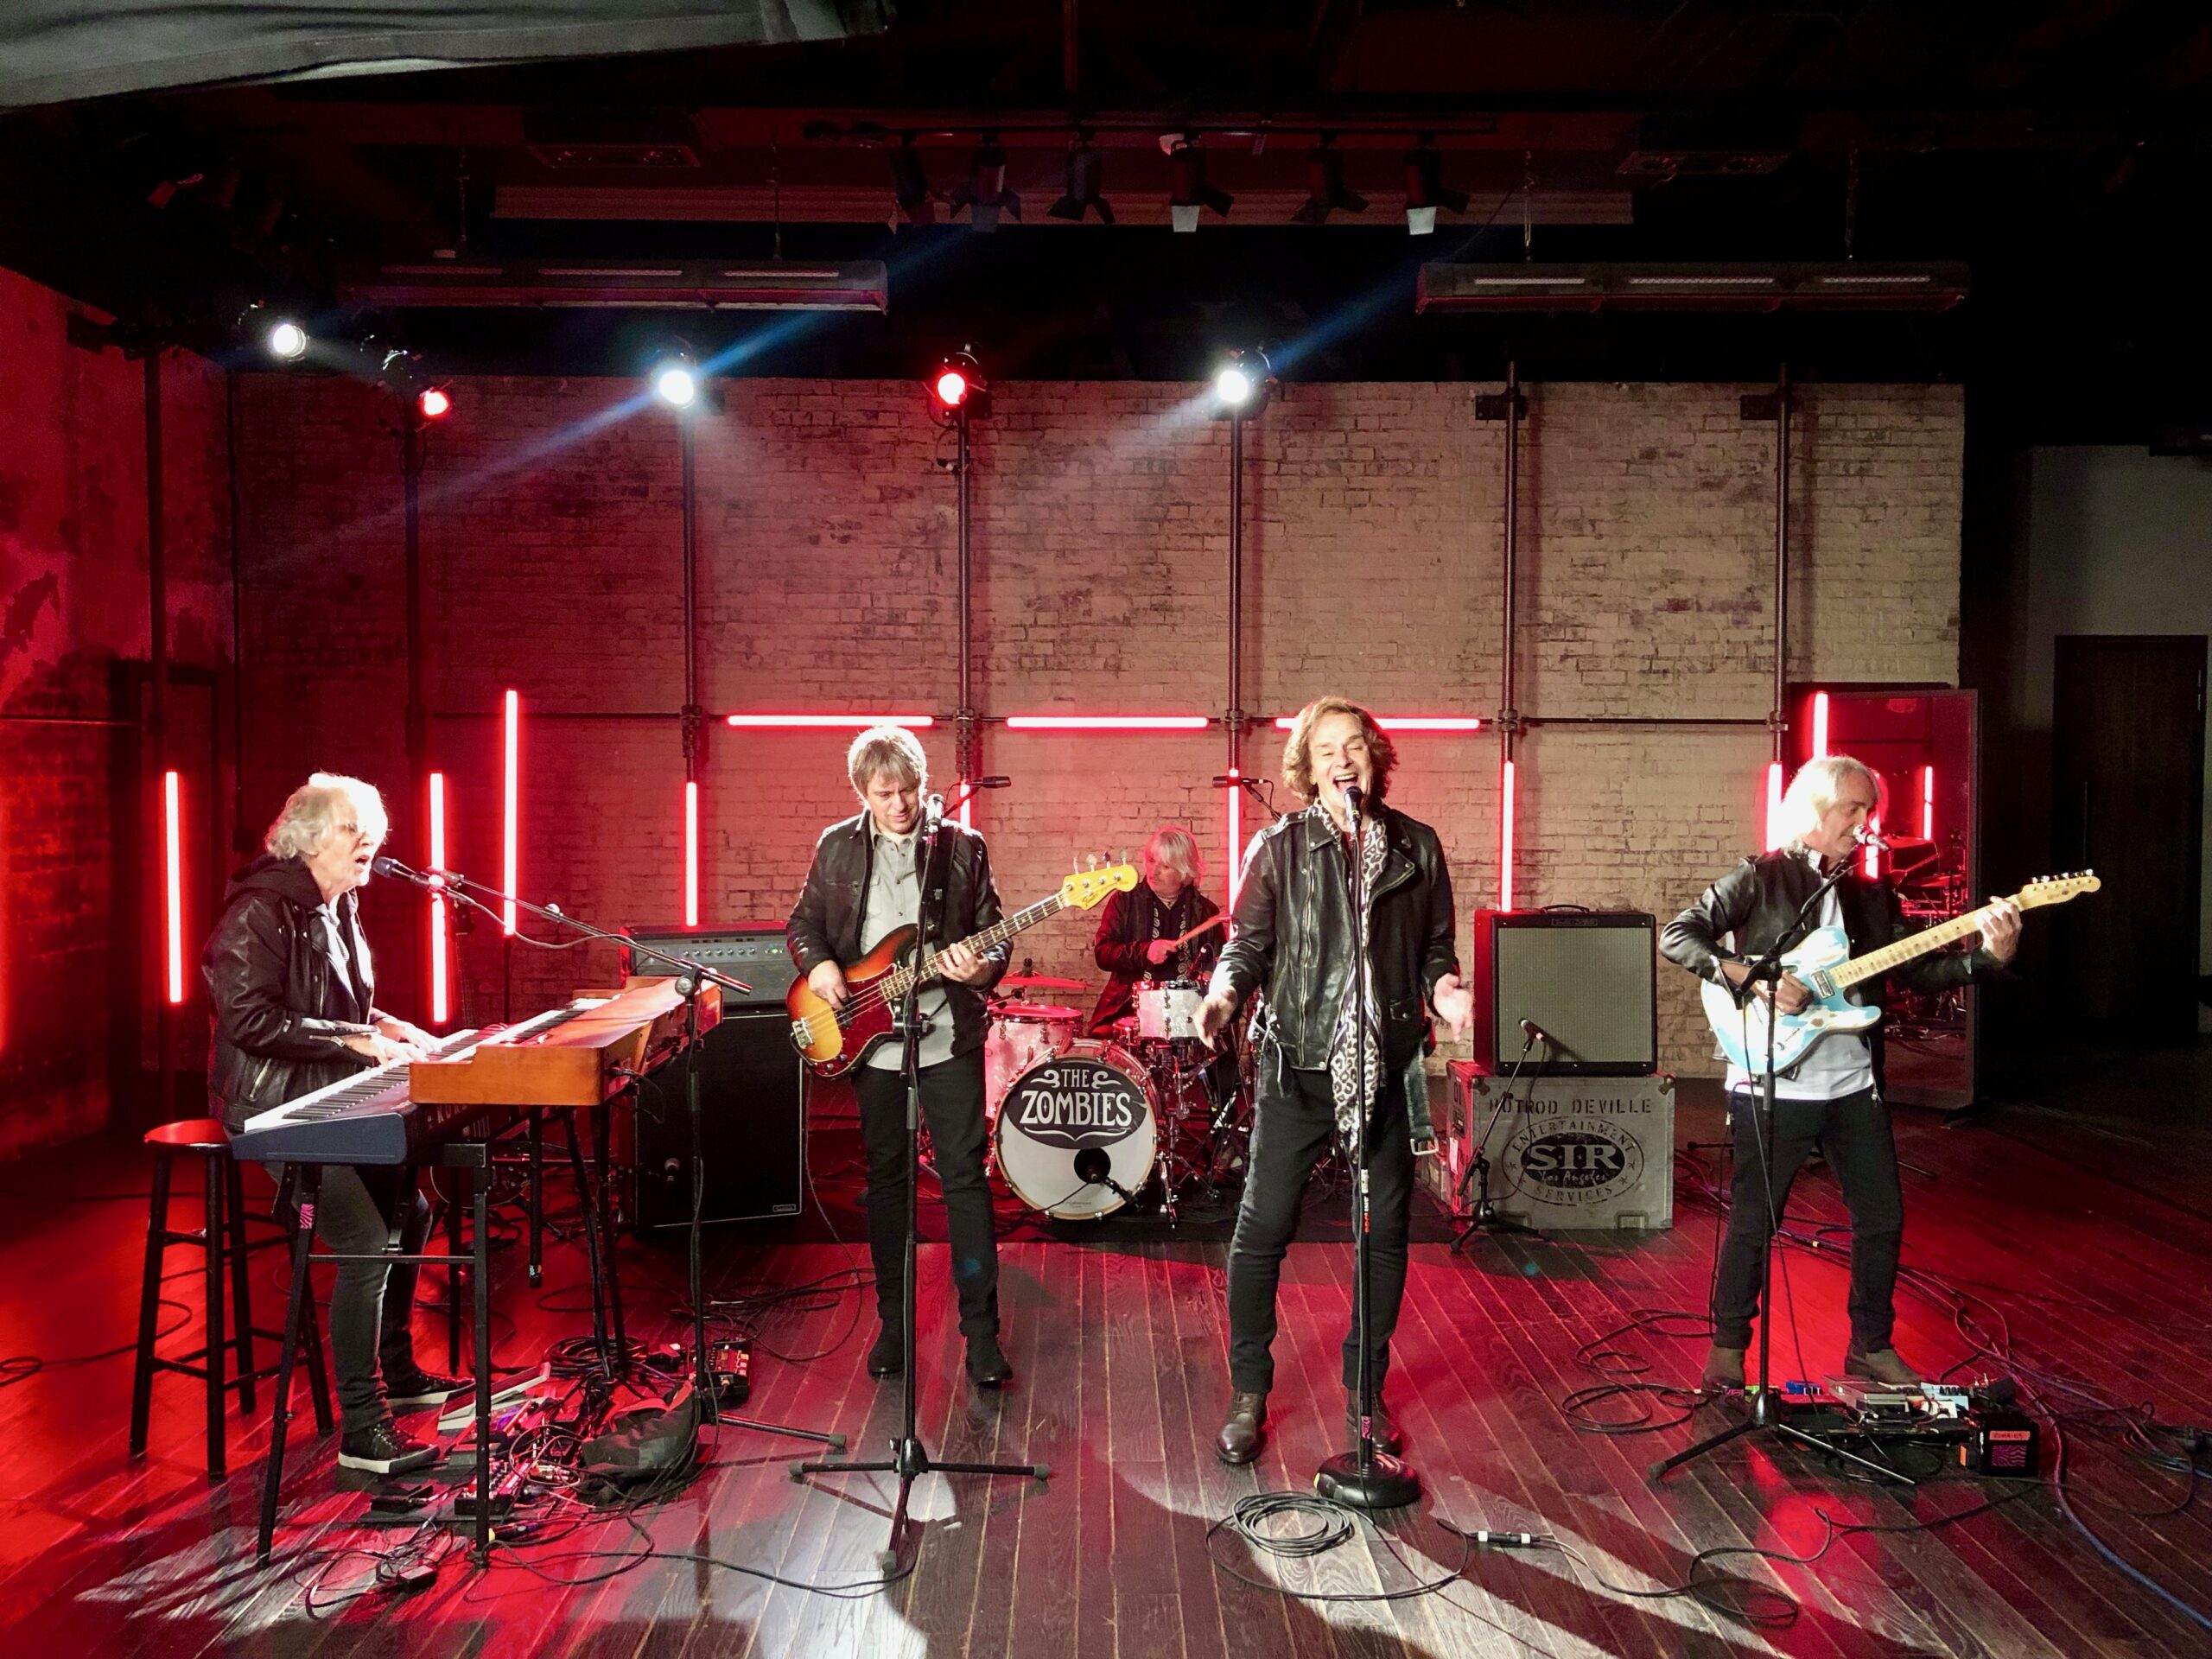 IN CONVERSATION – The Zombies' Colin Blunstone